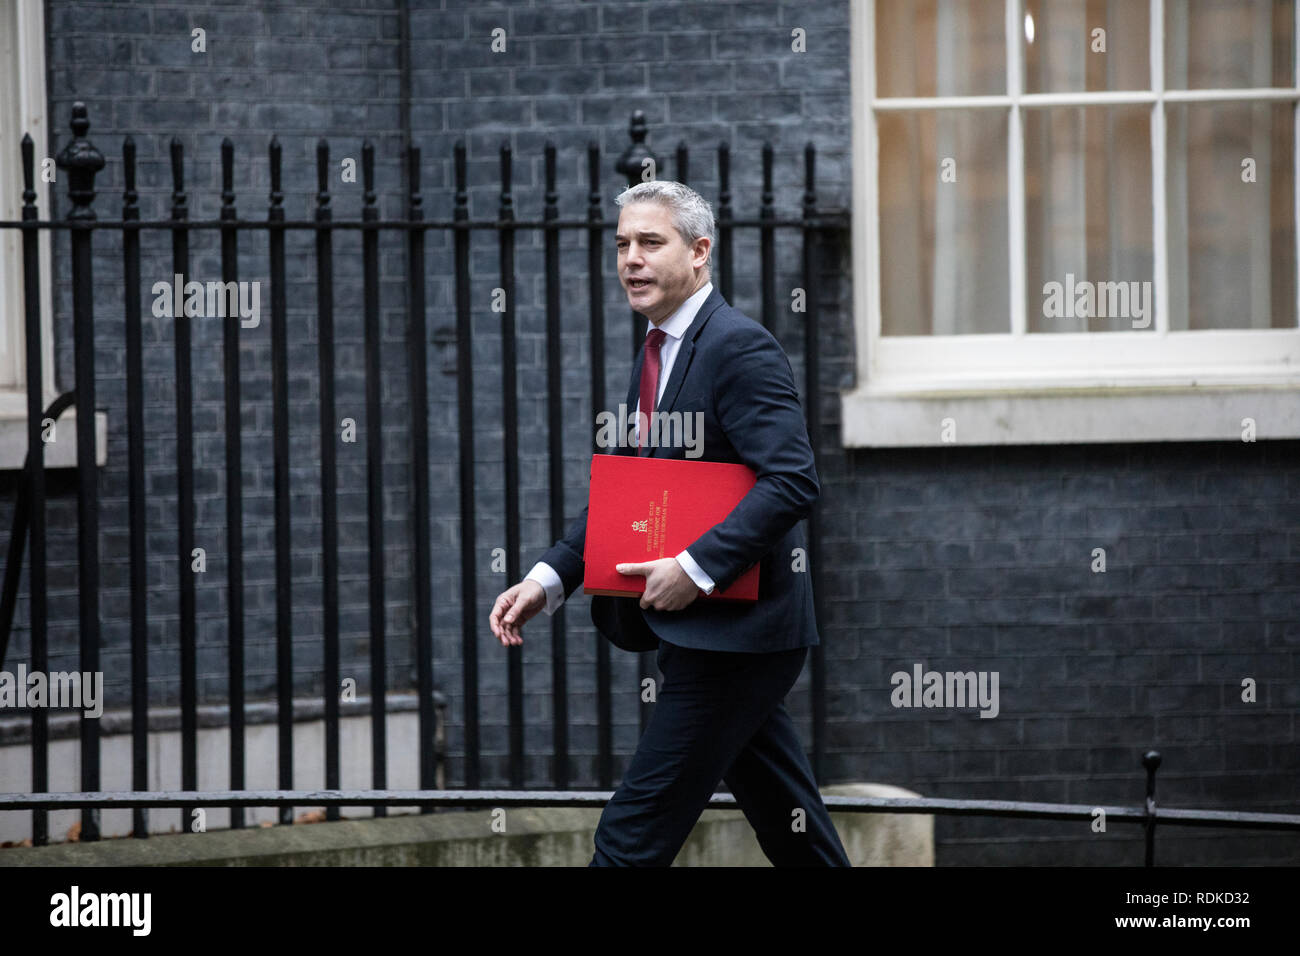 Stephen Barclay, Secretary of State for Exiting the European Union arrives at No.10 Downing Street for further Brexit talks with the Prime Minister. - Stock Image